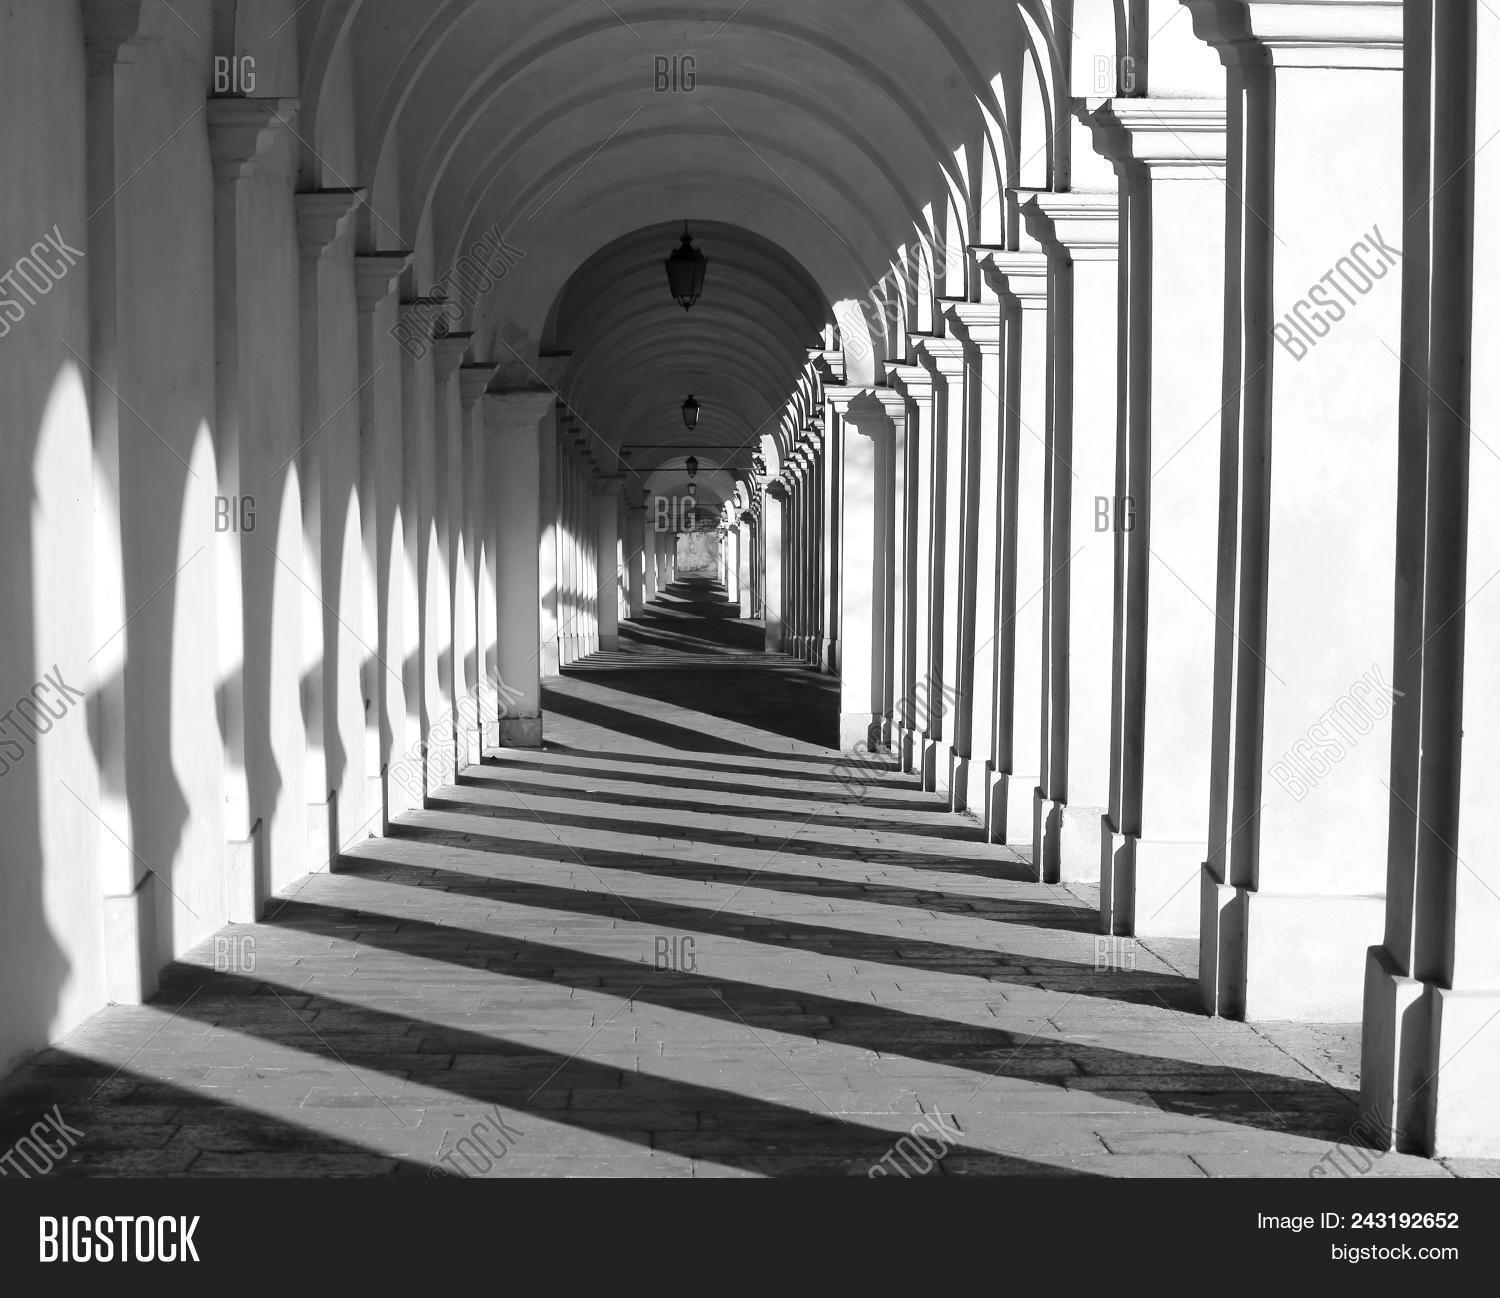 and,black,bw,contrast,dark,effect,empty,endless,future,gallery,infinite,infinity,long,no,nobody,none,over,people,peregrine,person,pilgrimage,pilgrims,tunnel,unending,vicenza,white,without,wormhole